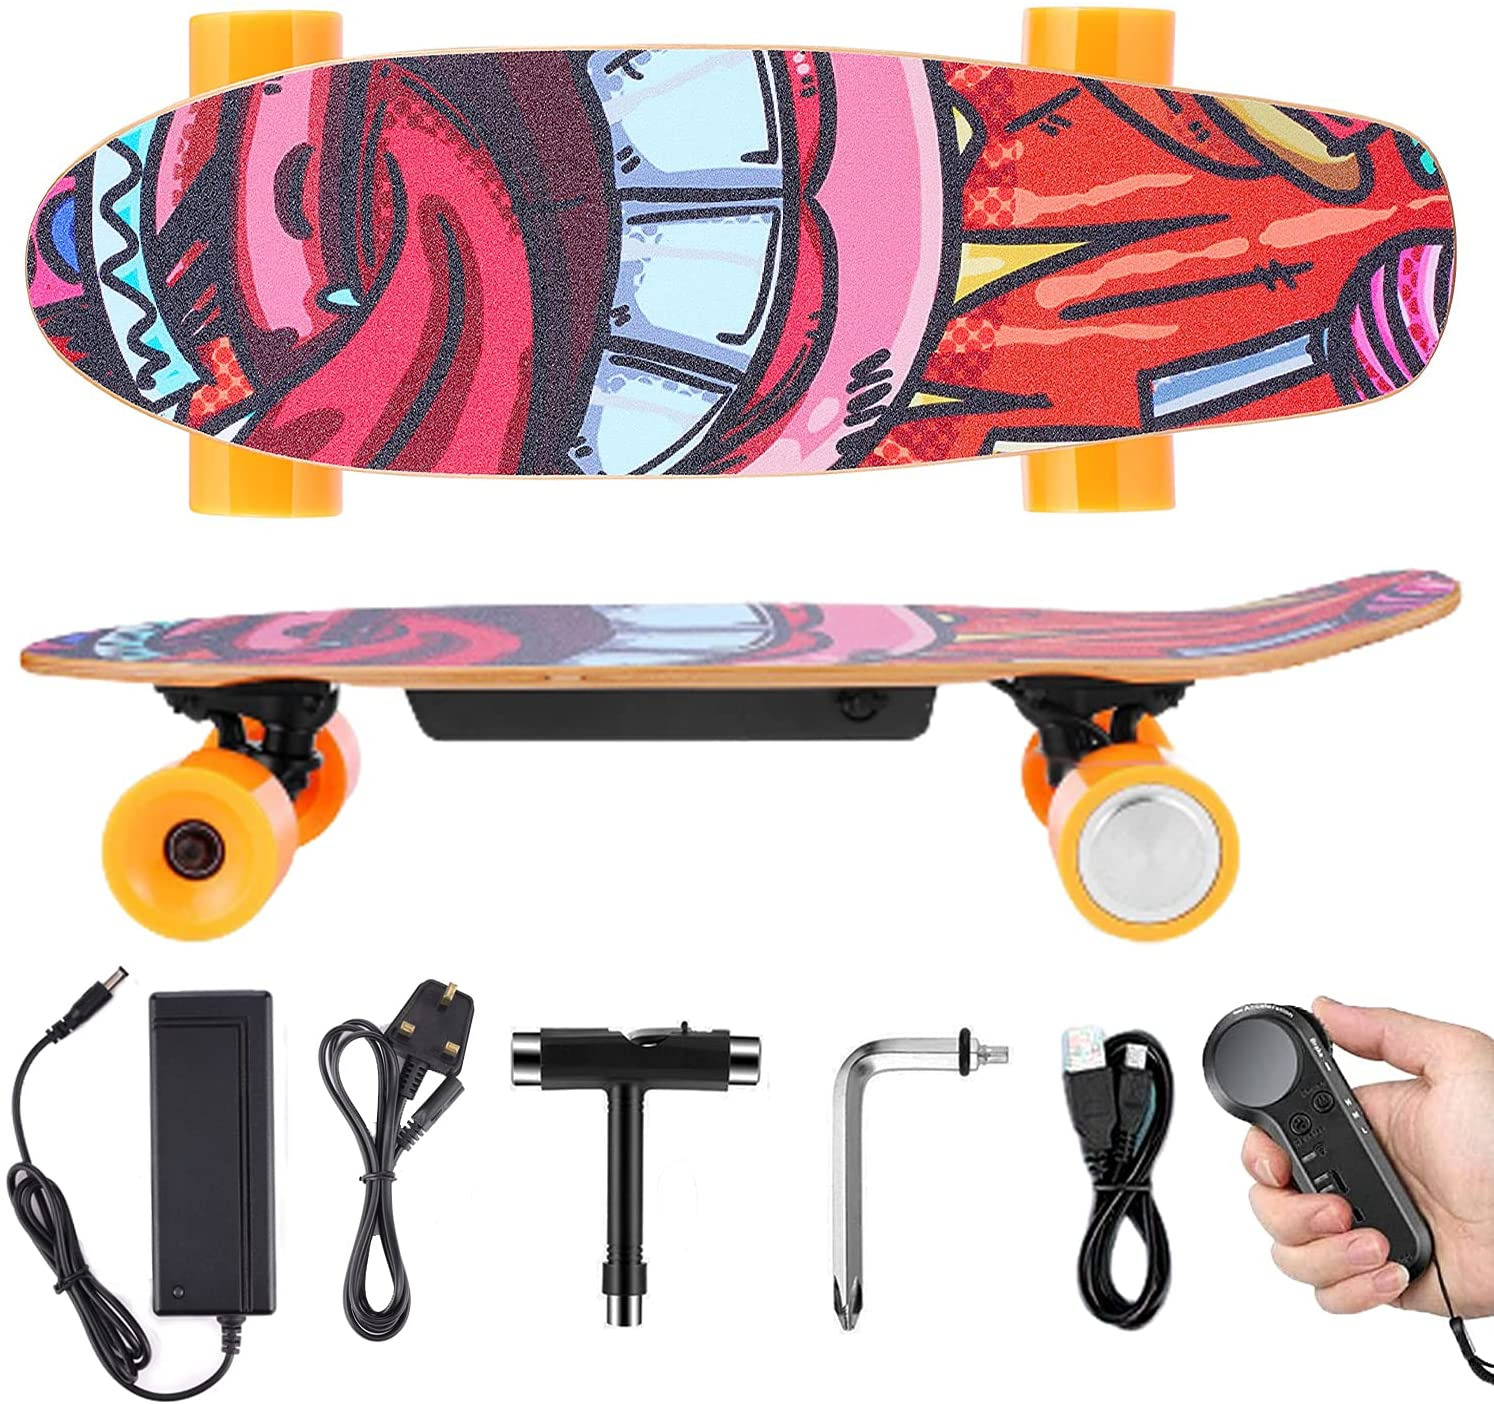 Electric Skateboard with Wireless Remote for kids and teens